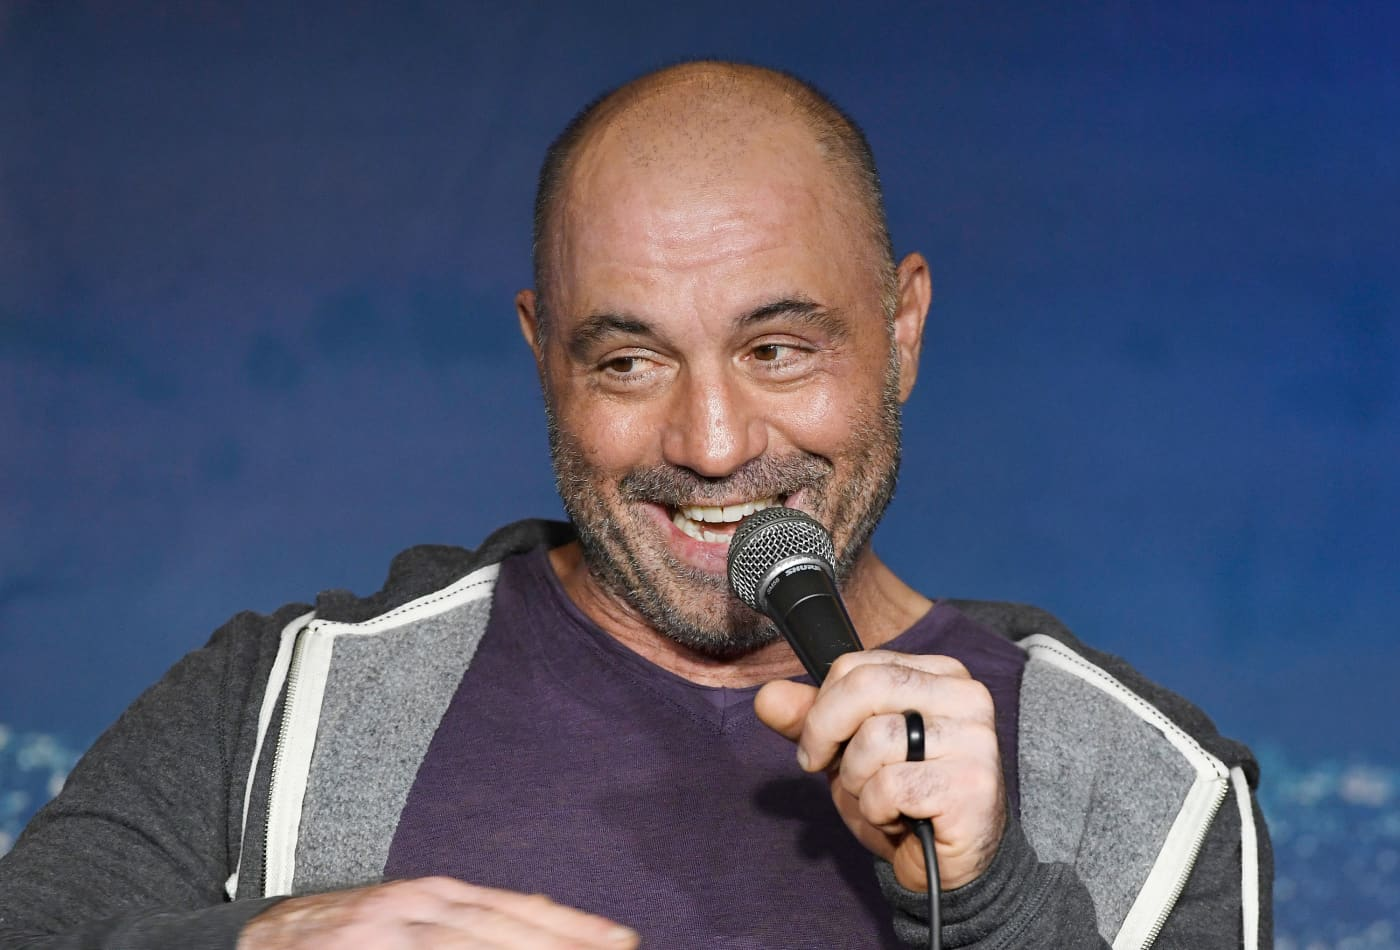 Joe Rogan ate nothing but meat for 30 days and said his 'energy levels were amazing'